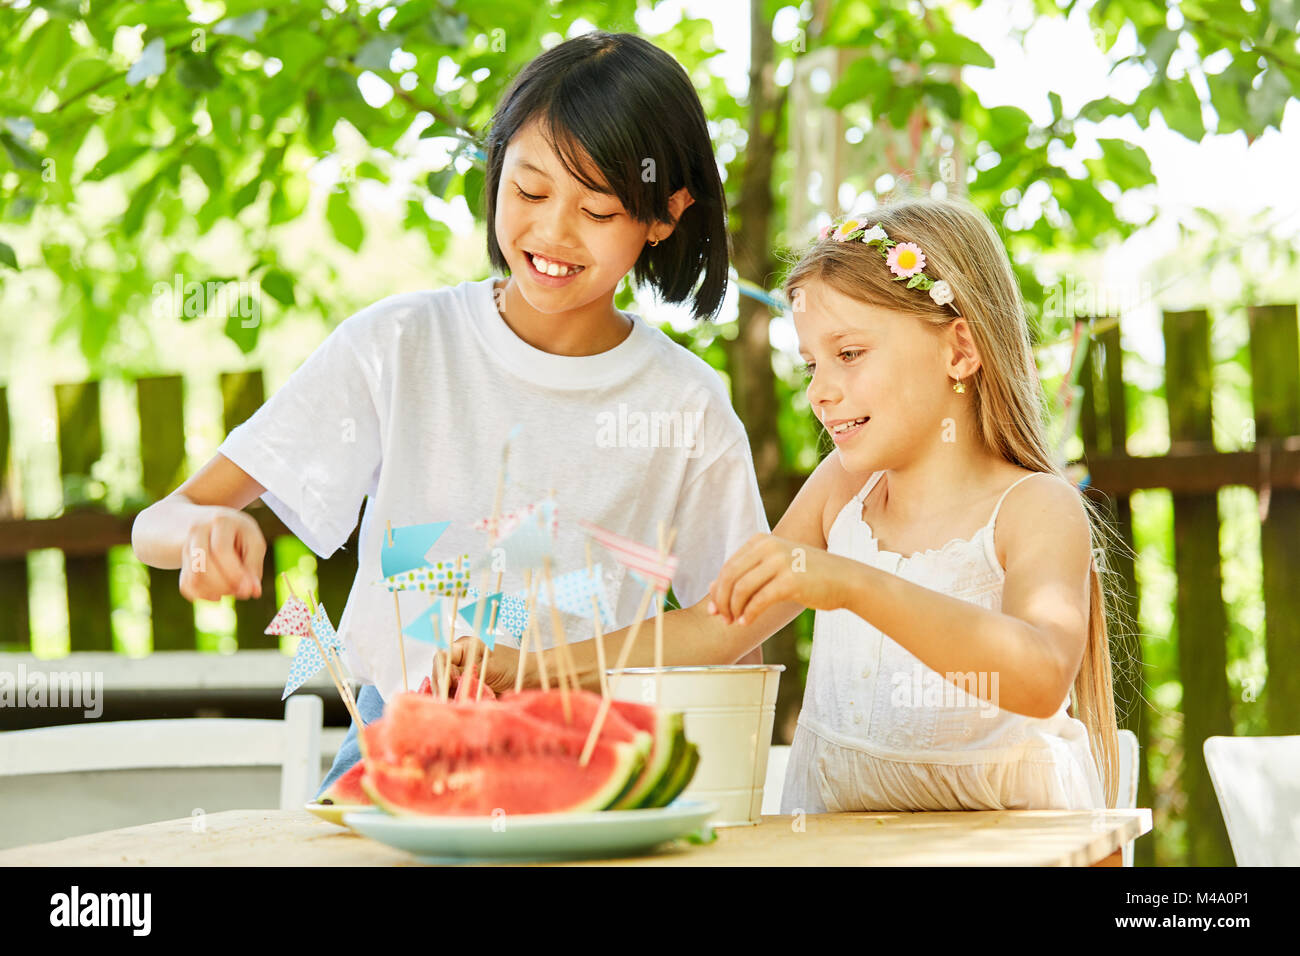 Two girls as friends decorate watermelons with little flags - Stock Image